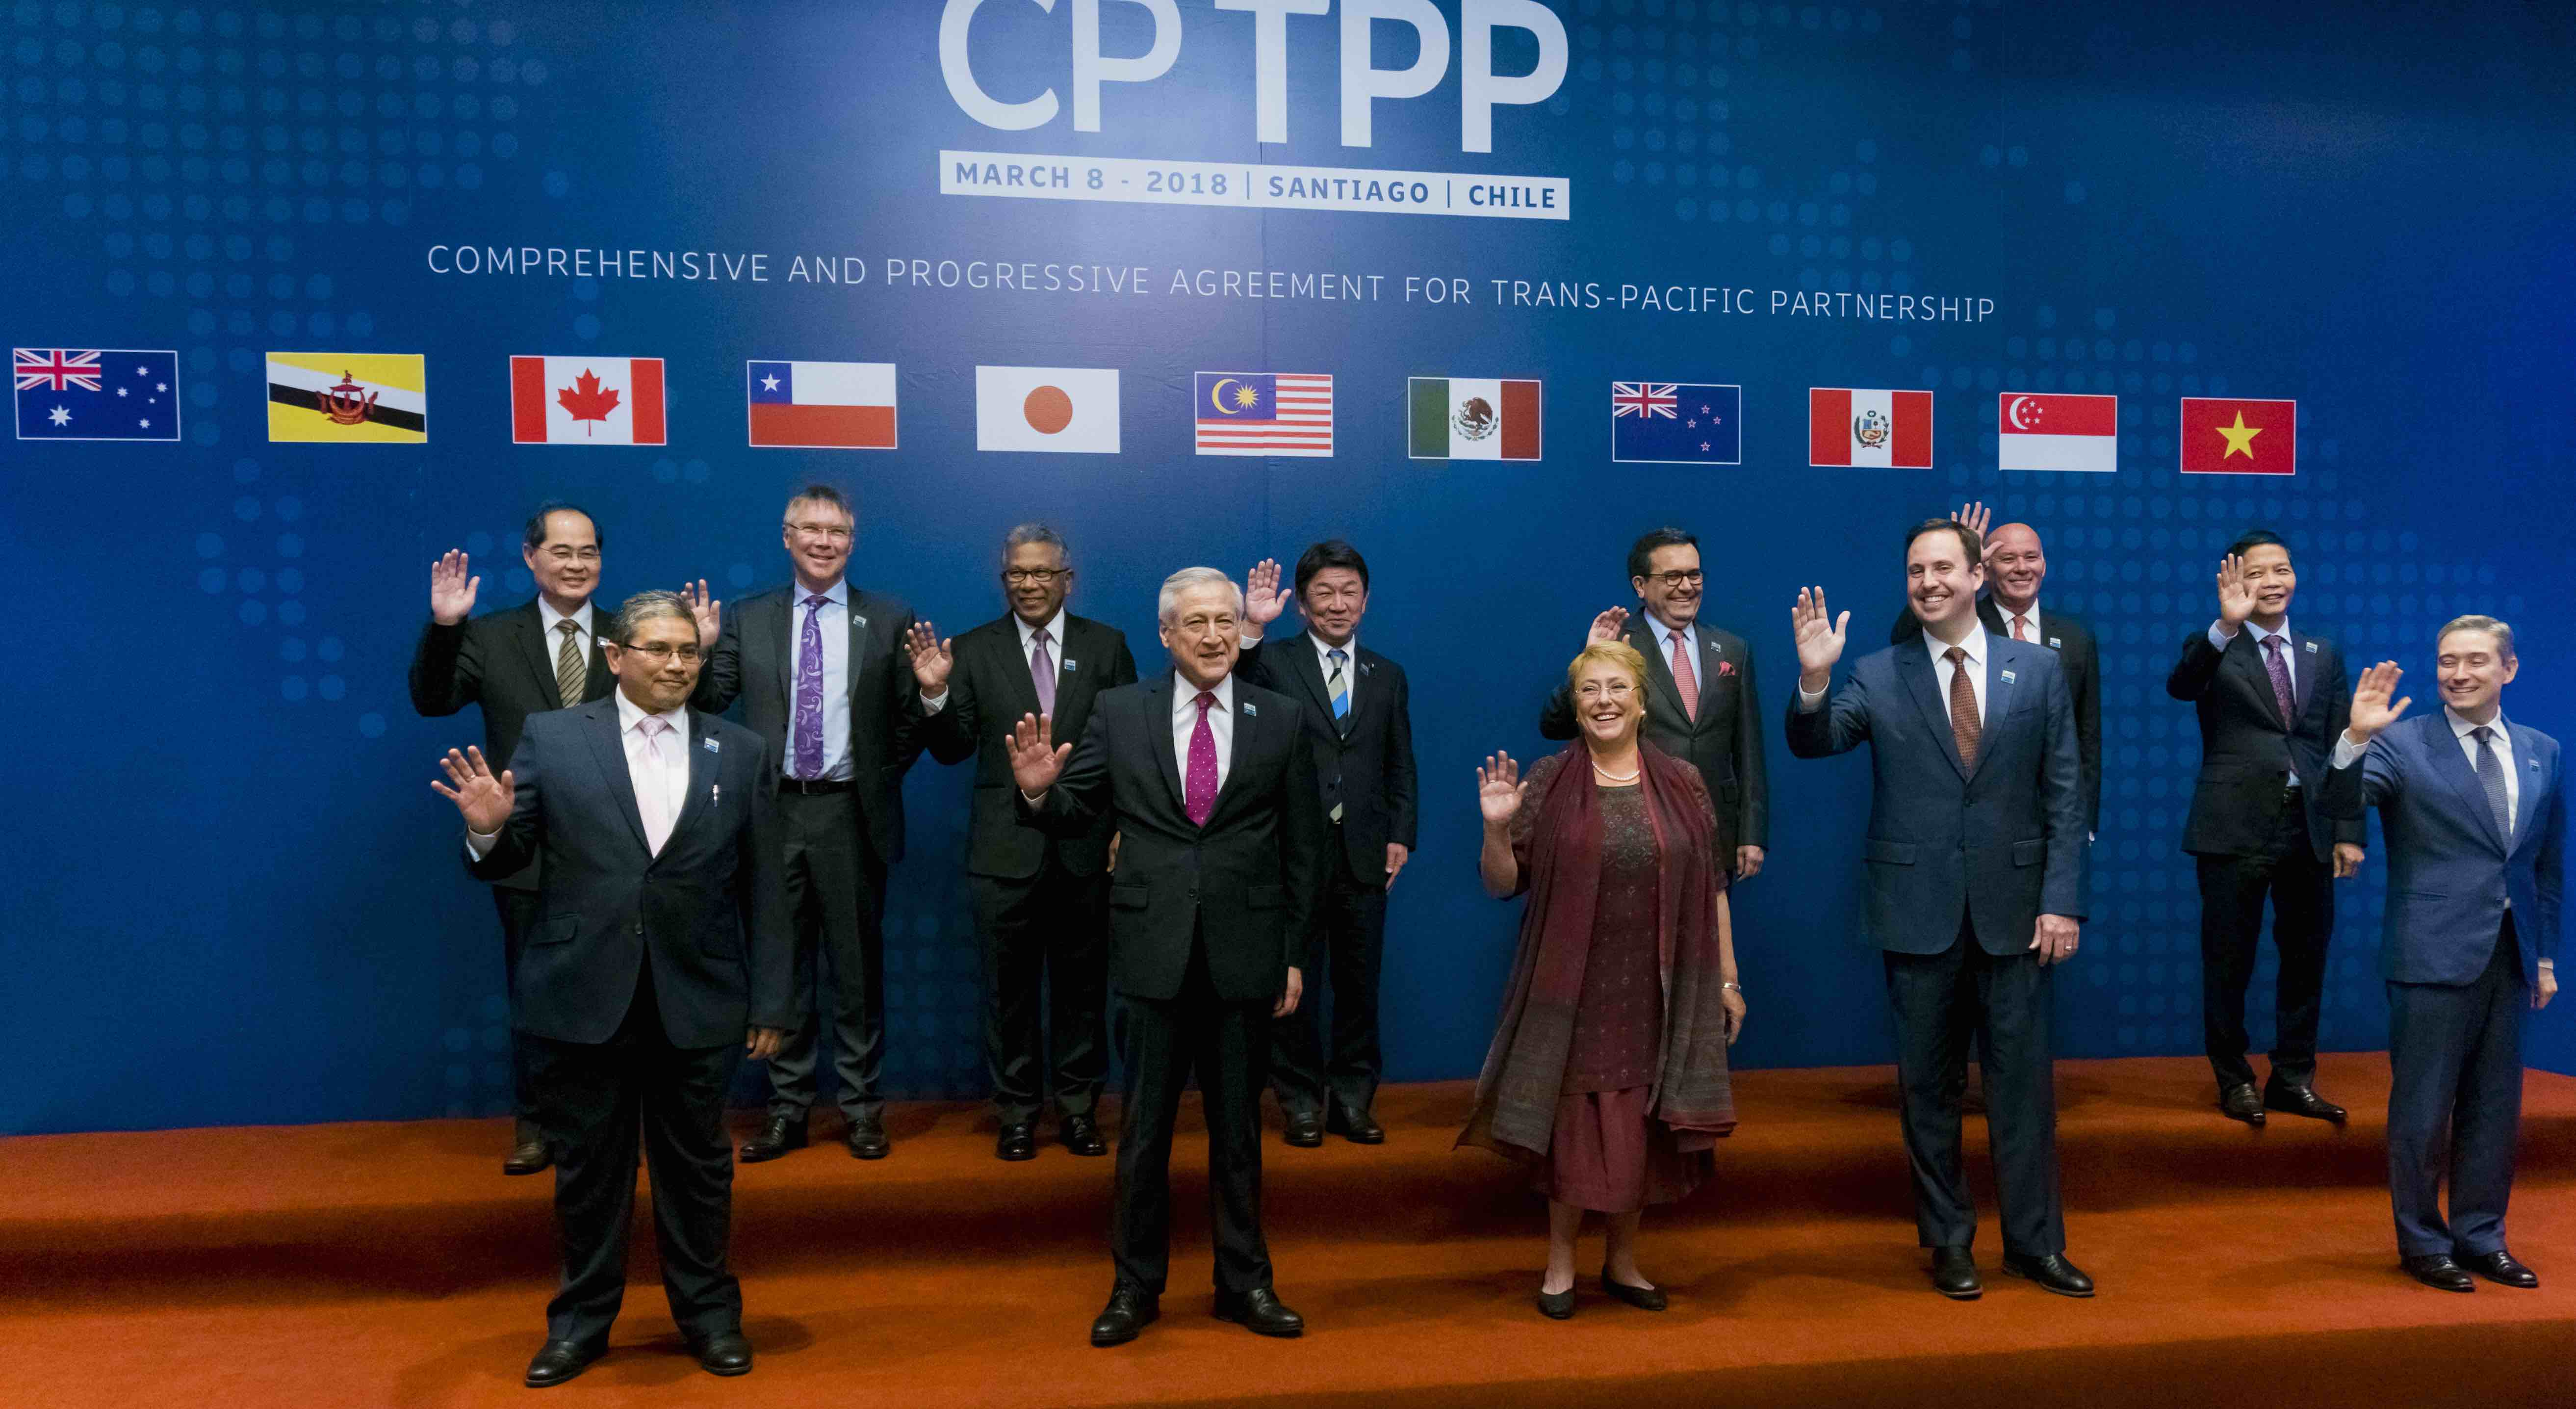 Signatories to the Comprehensive and Progressive Partnership for Trans-Pacific Partnership, 8 March (Photo: Sebastián Vivallo Oñate/Getty)